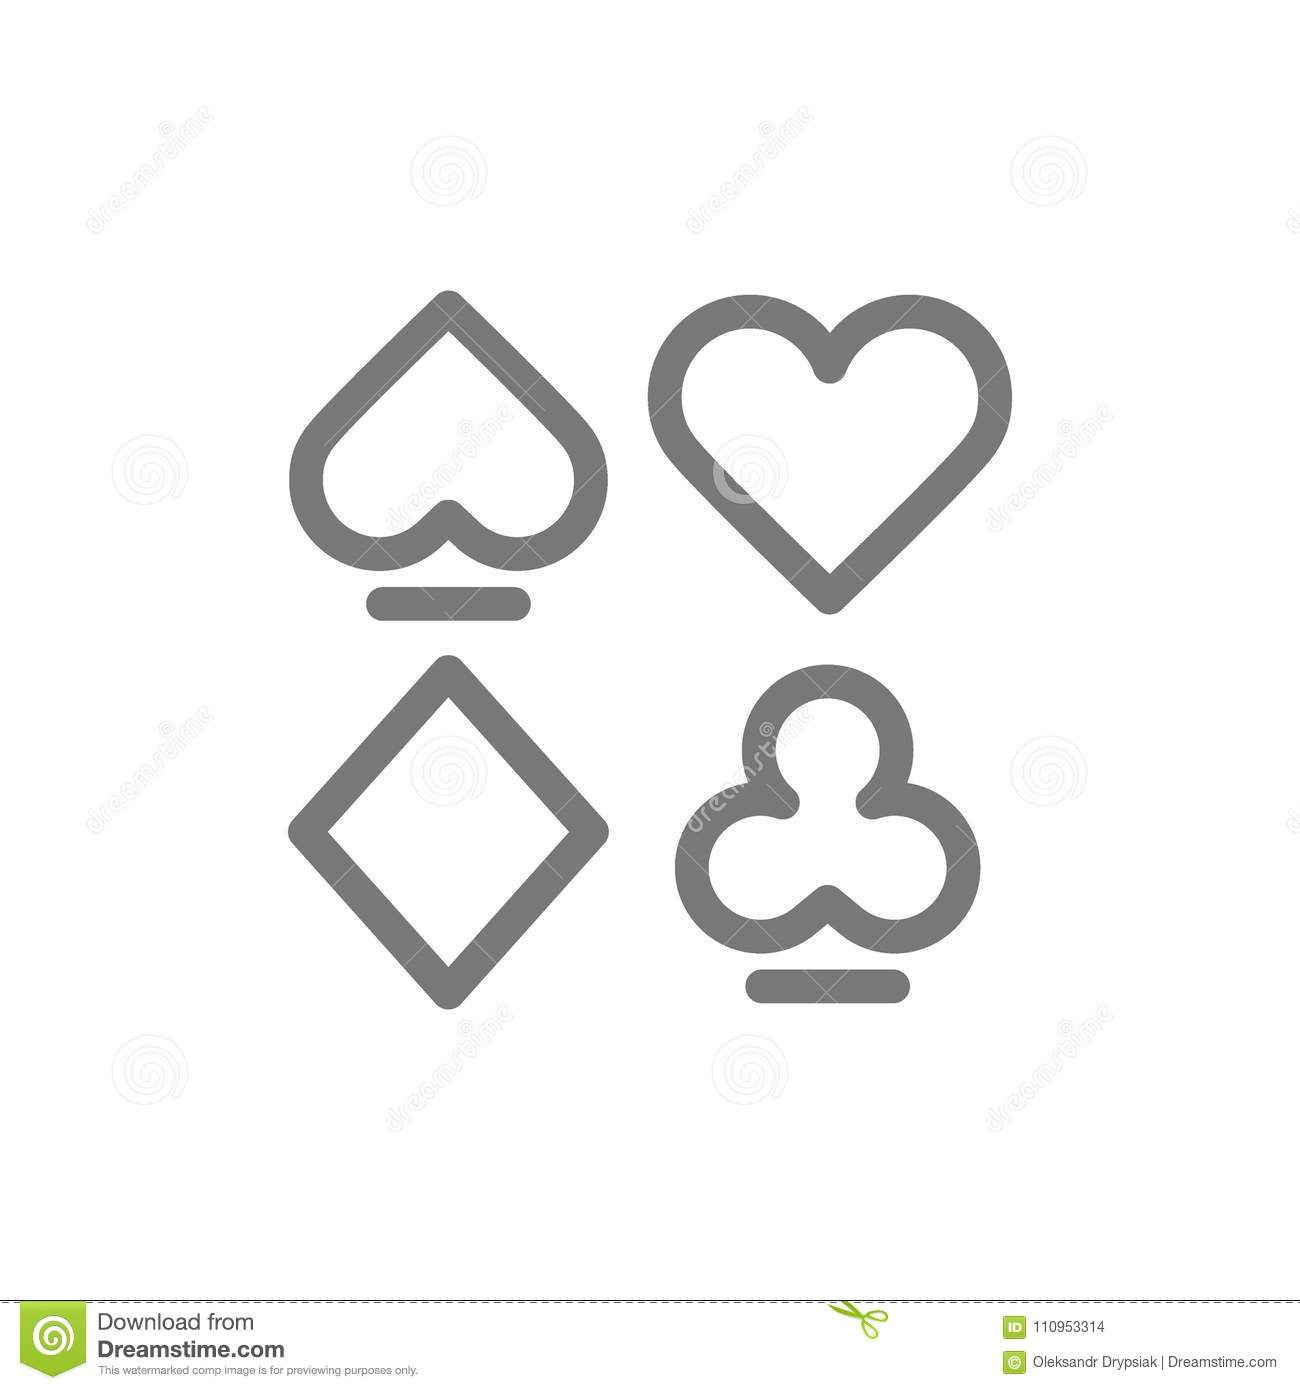 Simple card suits line icon. Symbol and sign vector illustration design. Isolated on white background